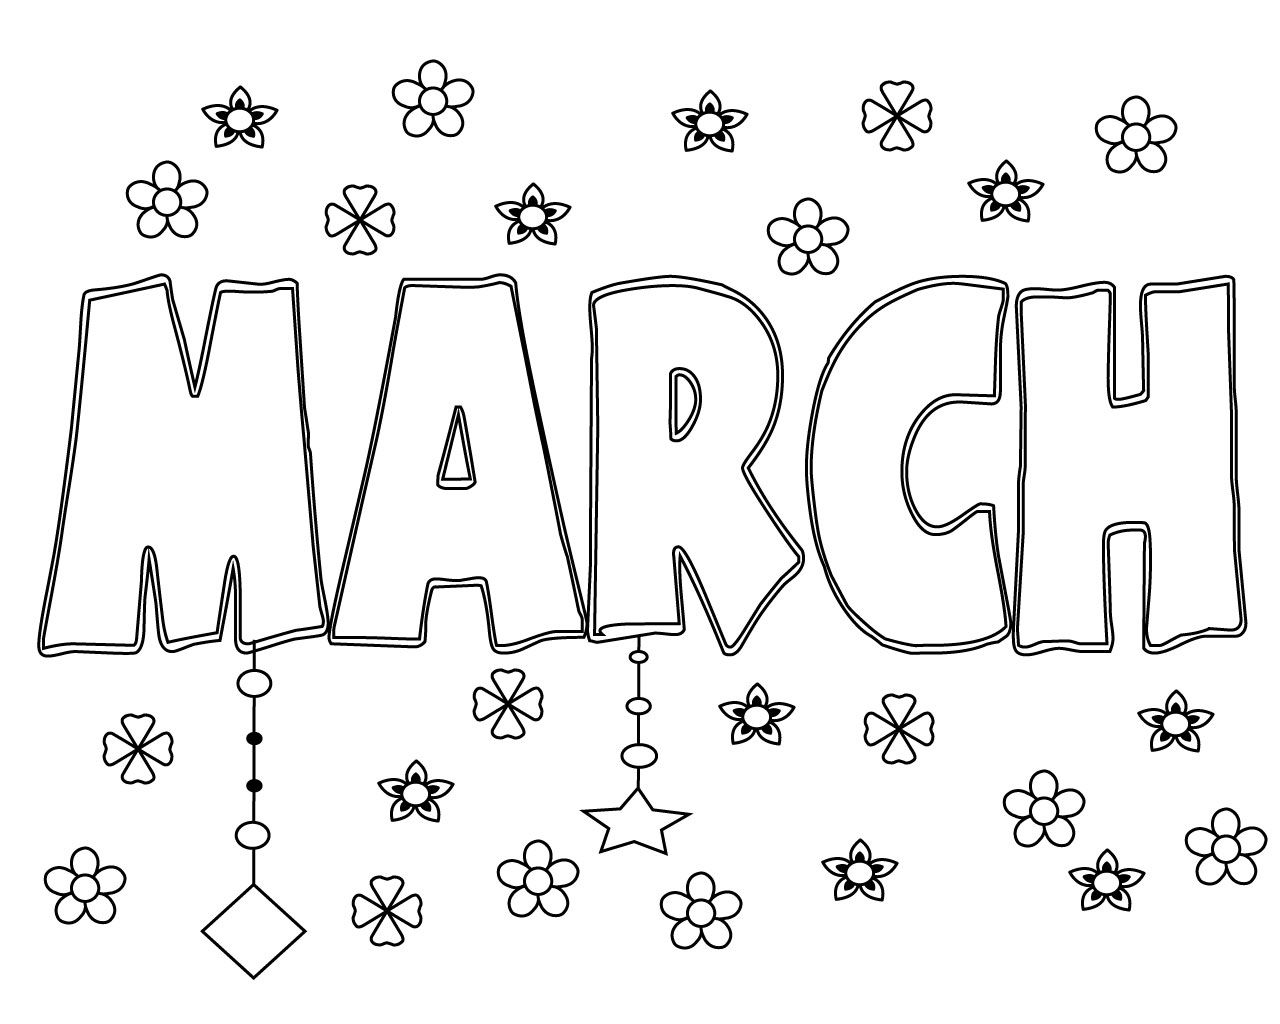 Free Printable March Coloring Pages For Kids